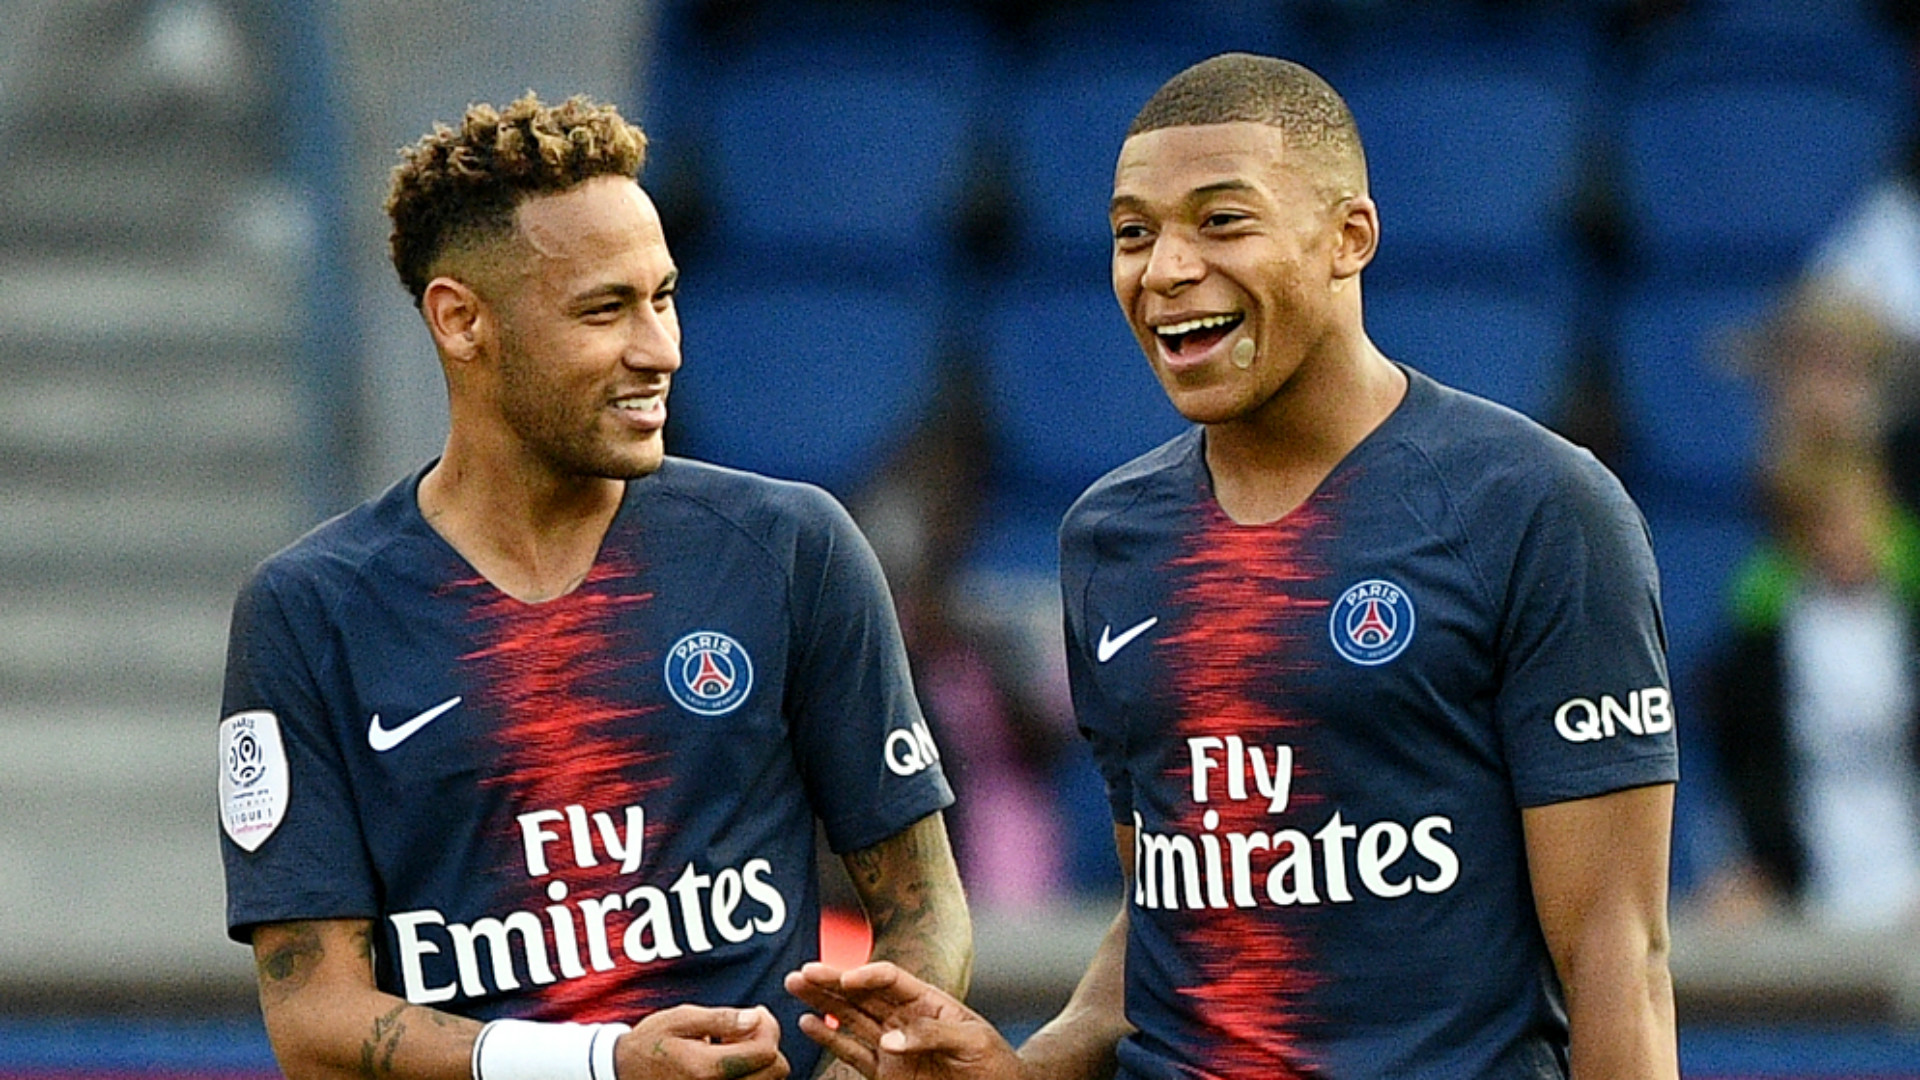 Psg Star Kylian Mbappe On Track To Match Lionel Messi Cristiano Ronaldo Giuly Goal Com